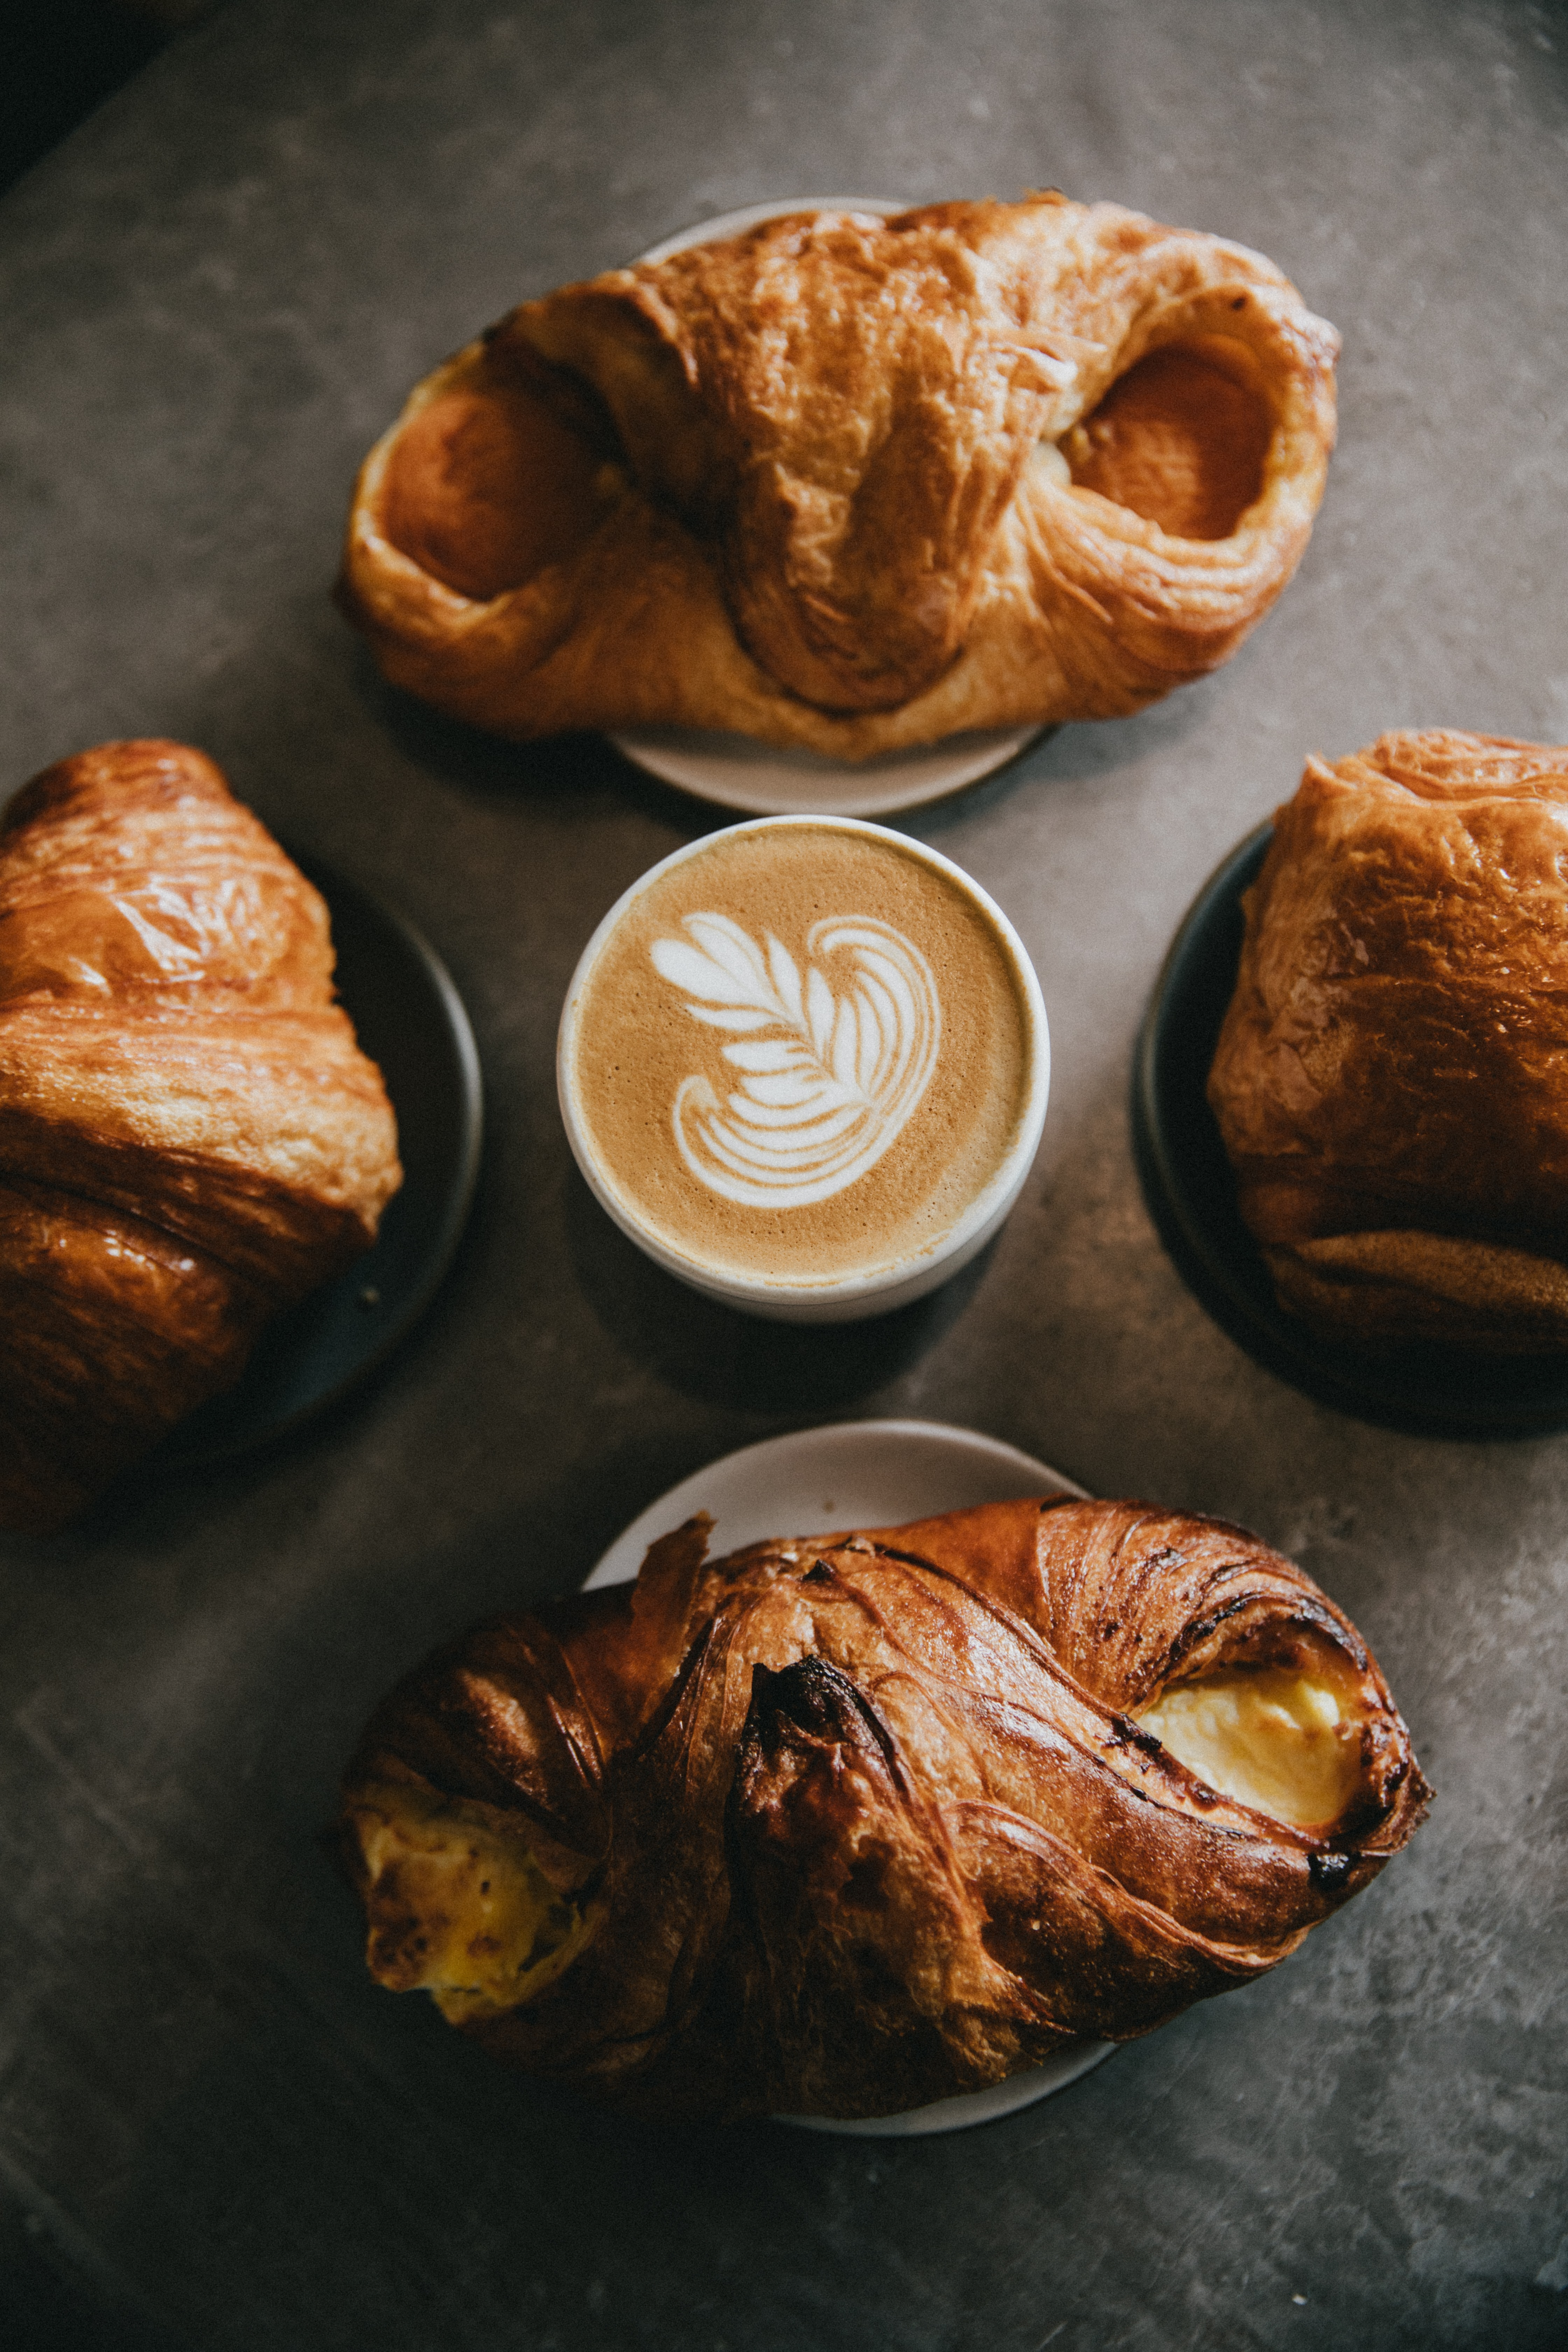 coffee surrounded by four baked breads